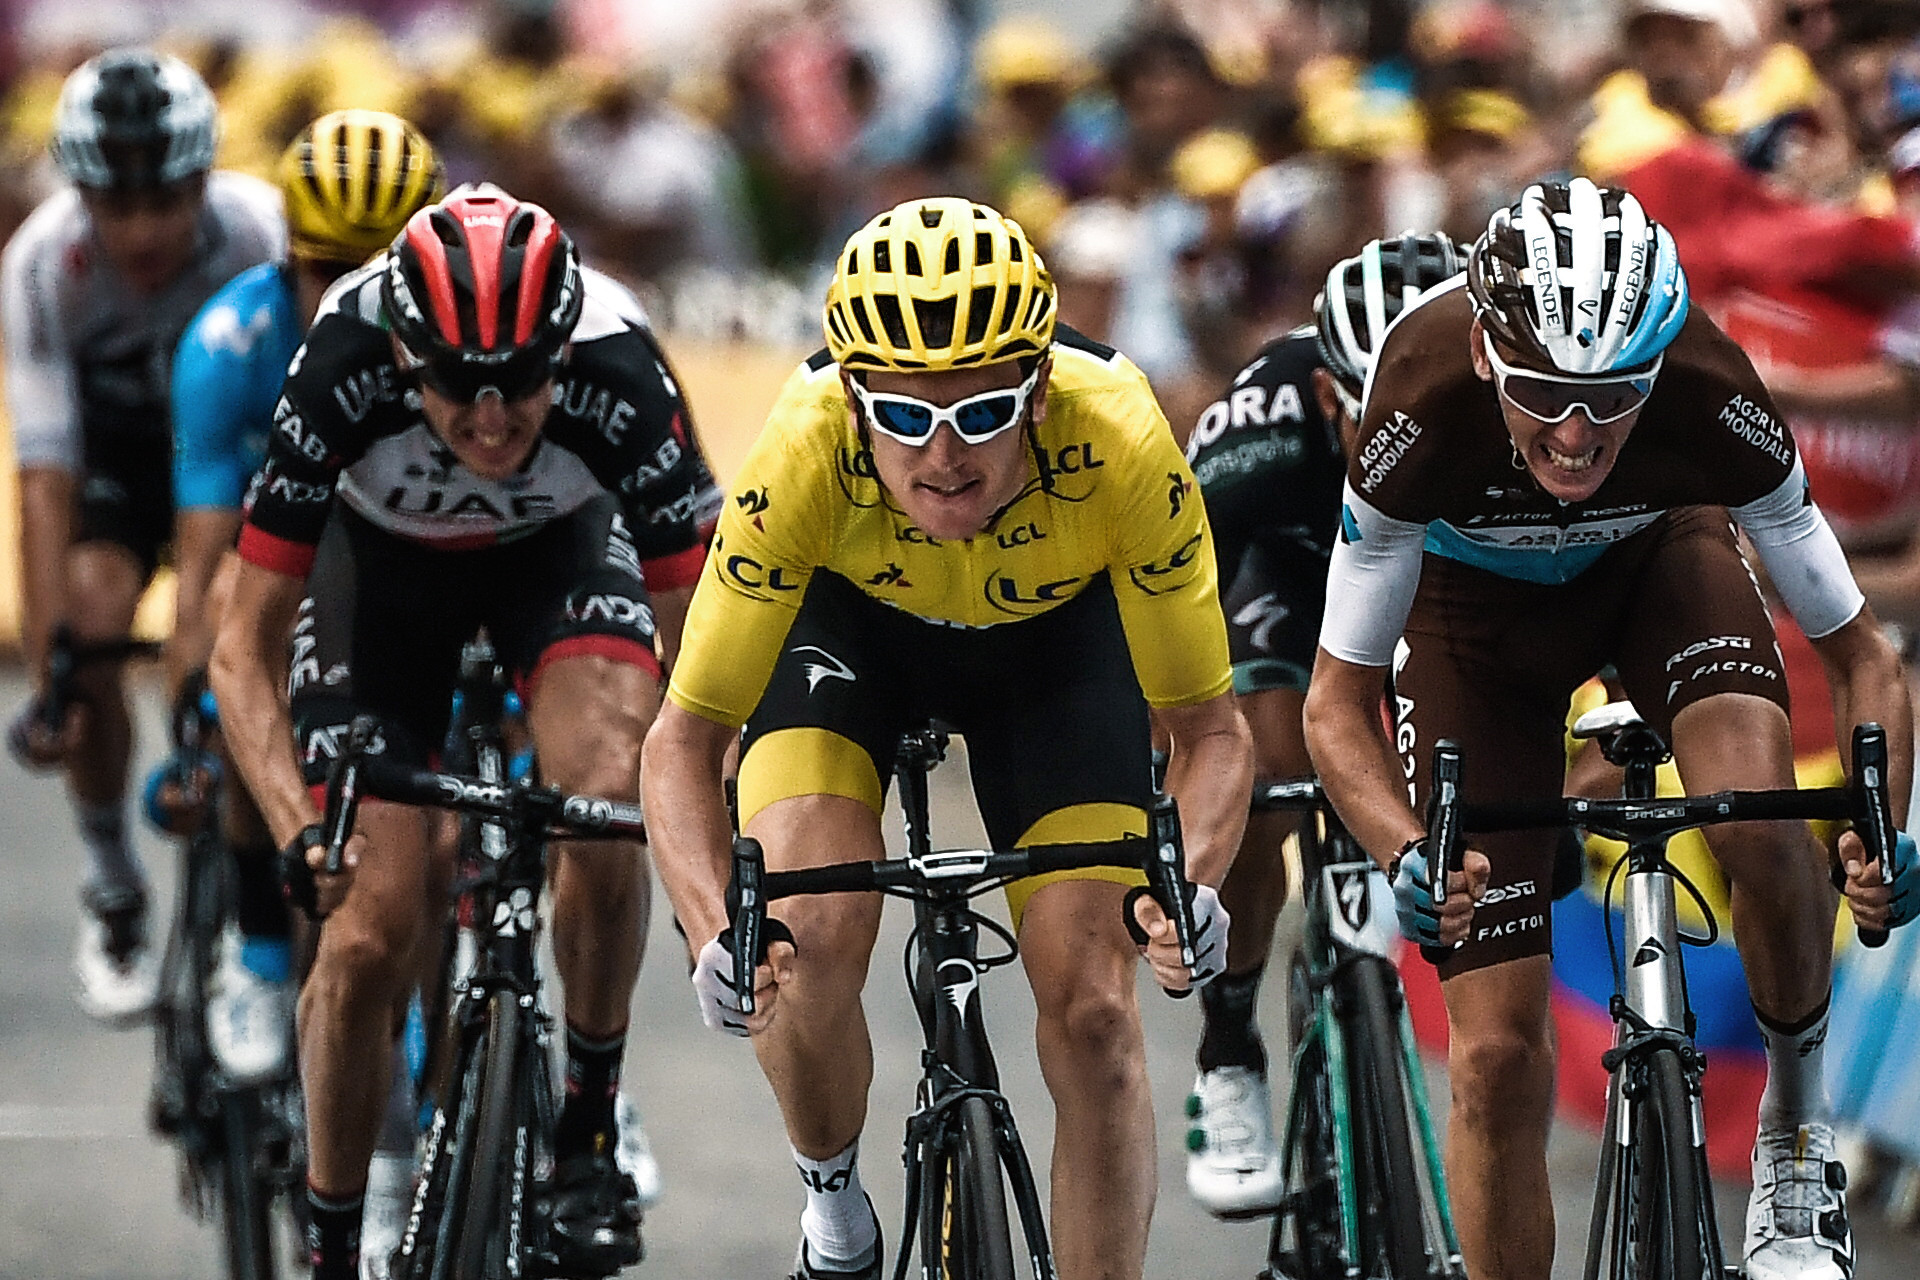 Geraint Thomas is in pole position to win cycling's most famous race ©Getty Images